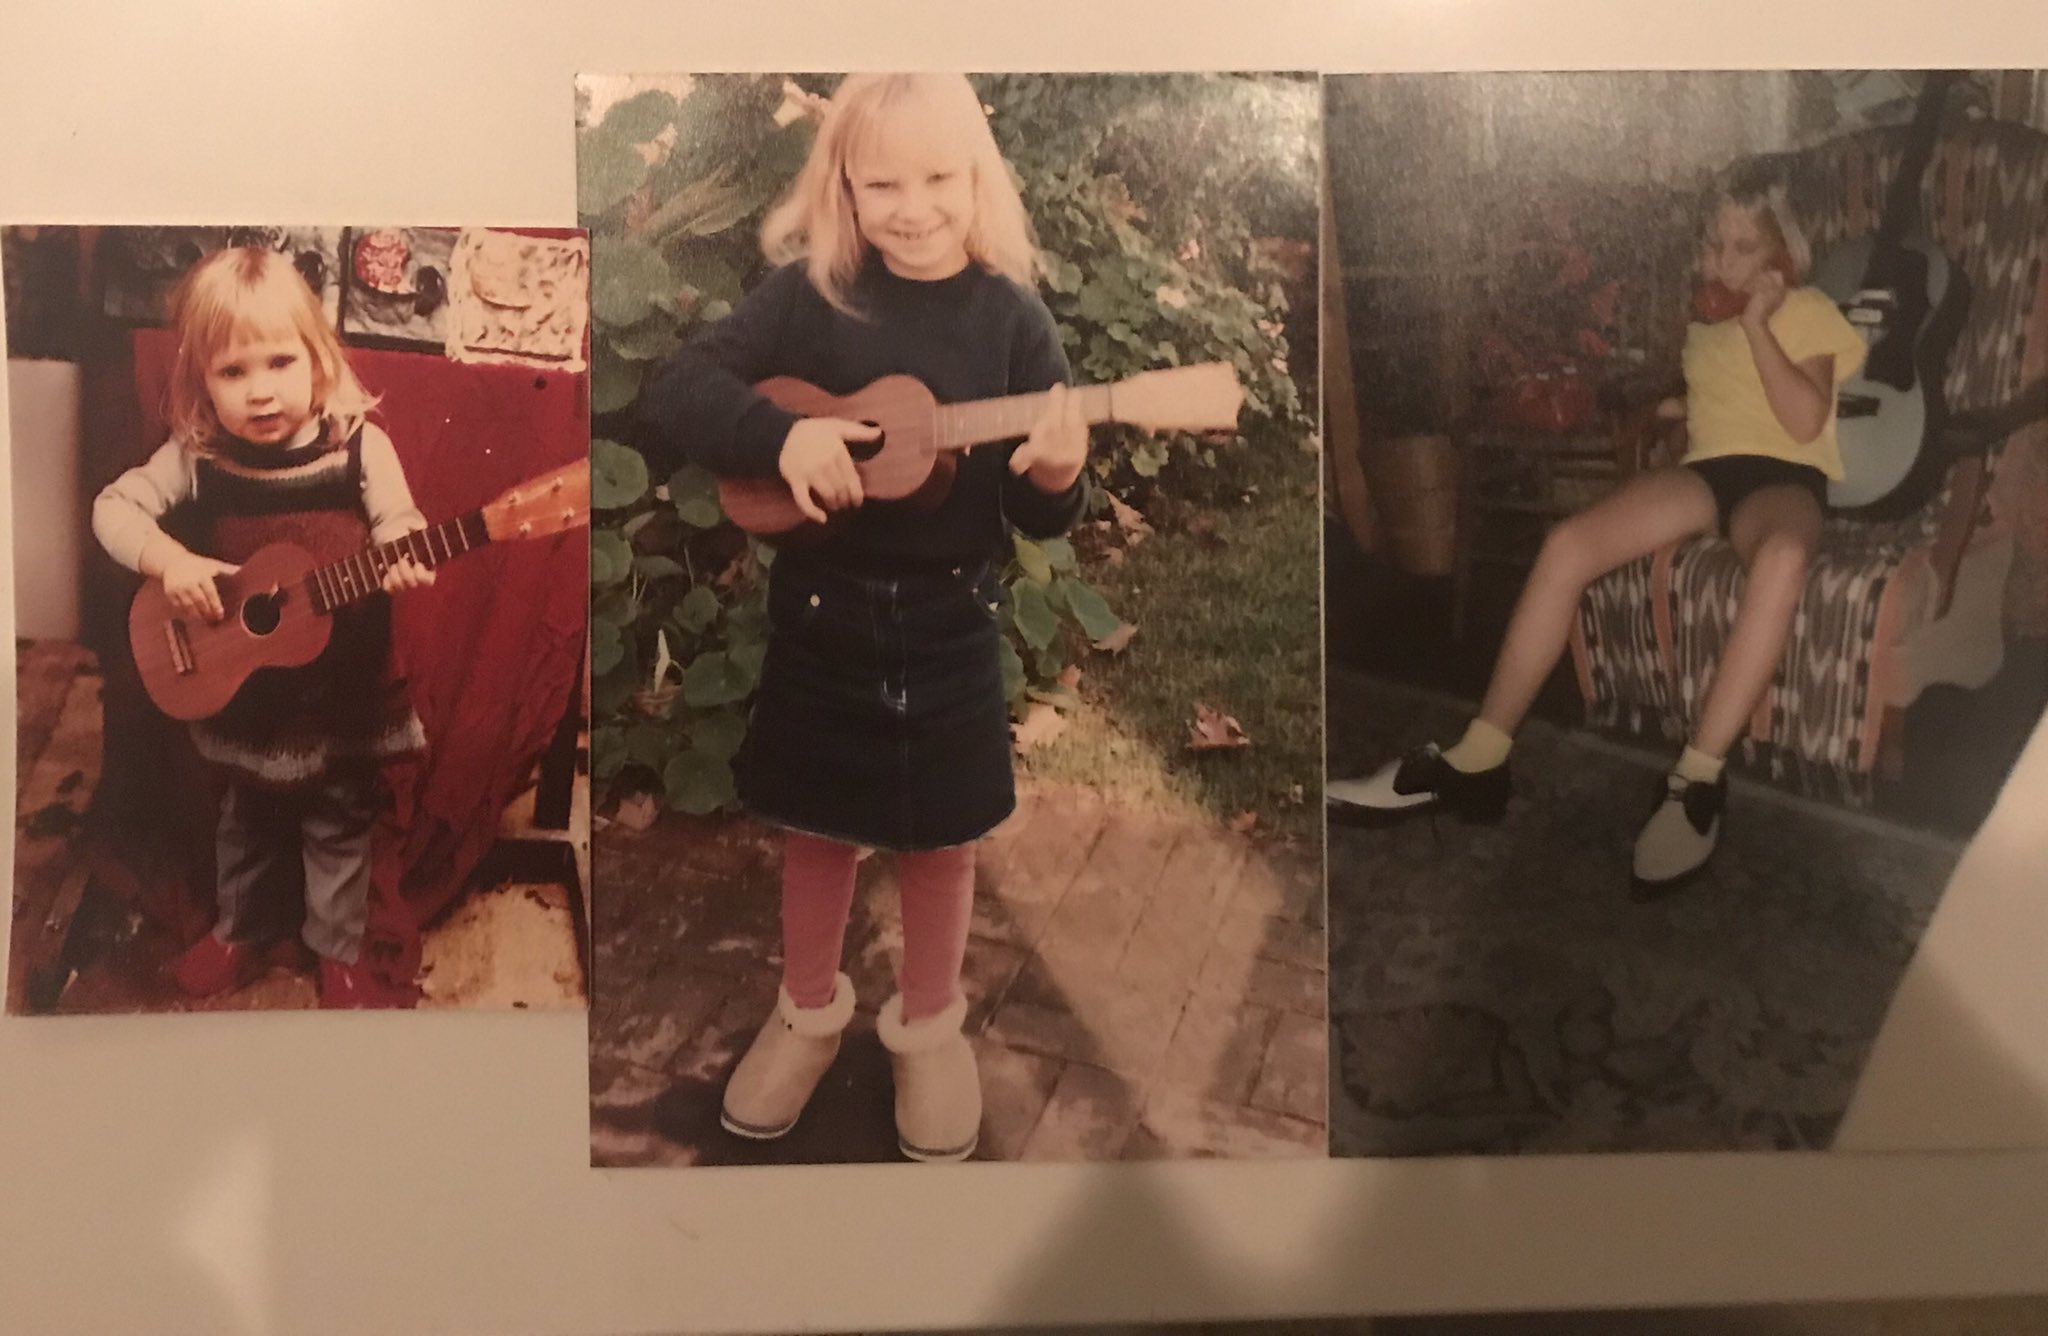 I literally have no idea how to play any instruments at all. Apparently I used to? https://t.co/b1SyiVteun